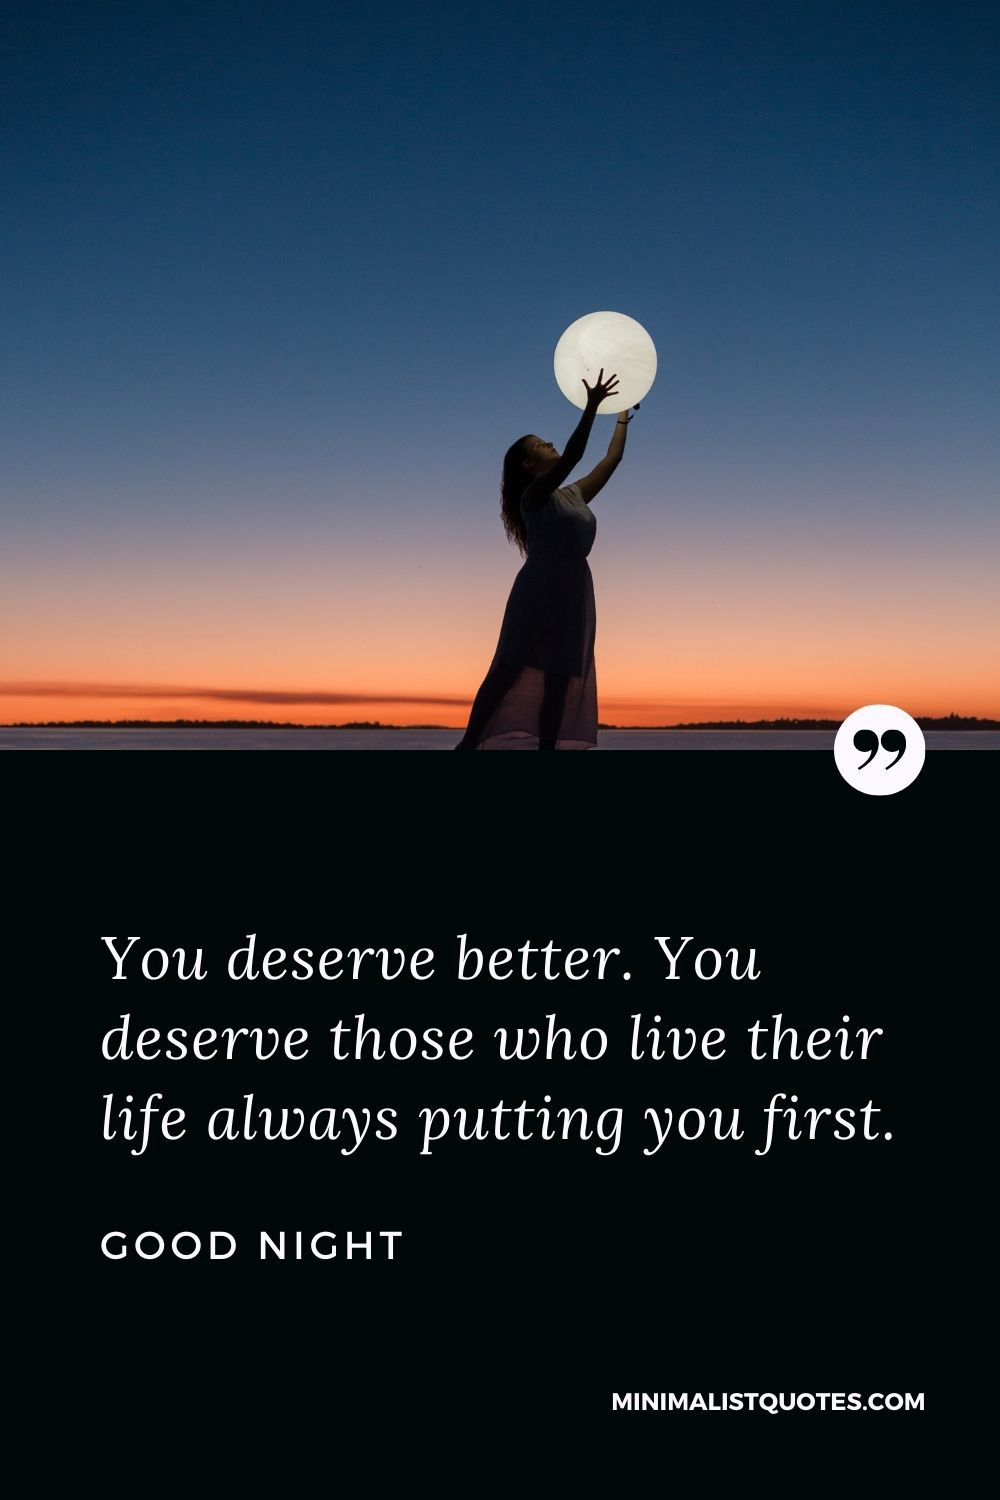 Good Night Wishes - You deserve better. You deserve those who live their life always putting you first.